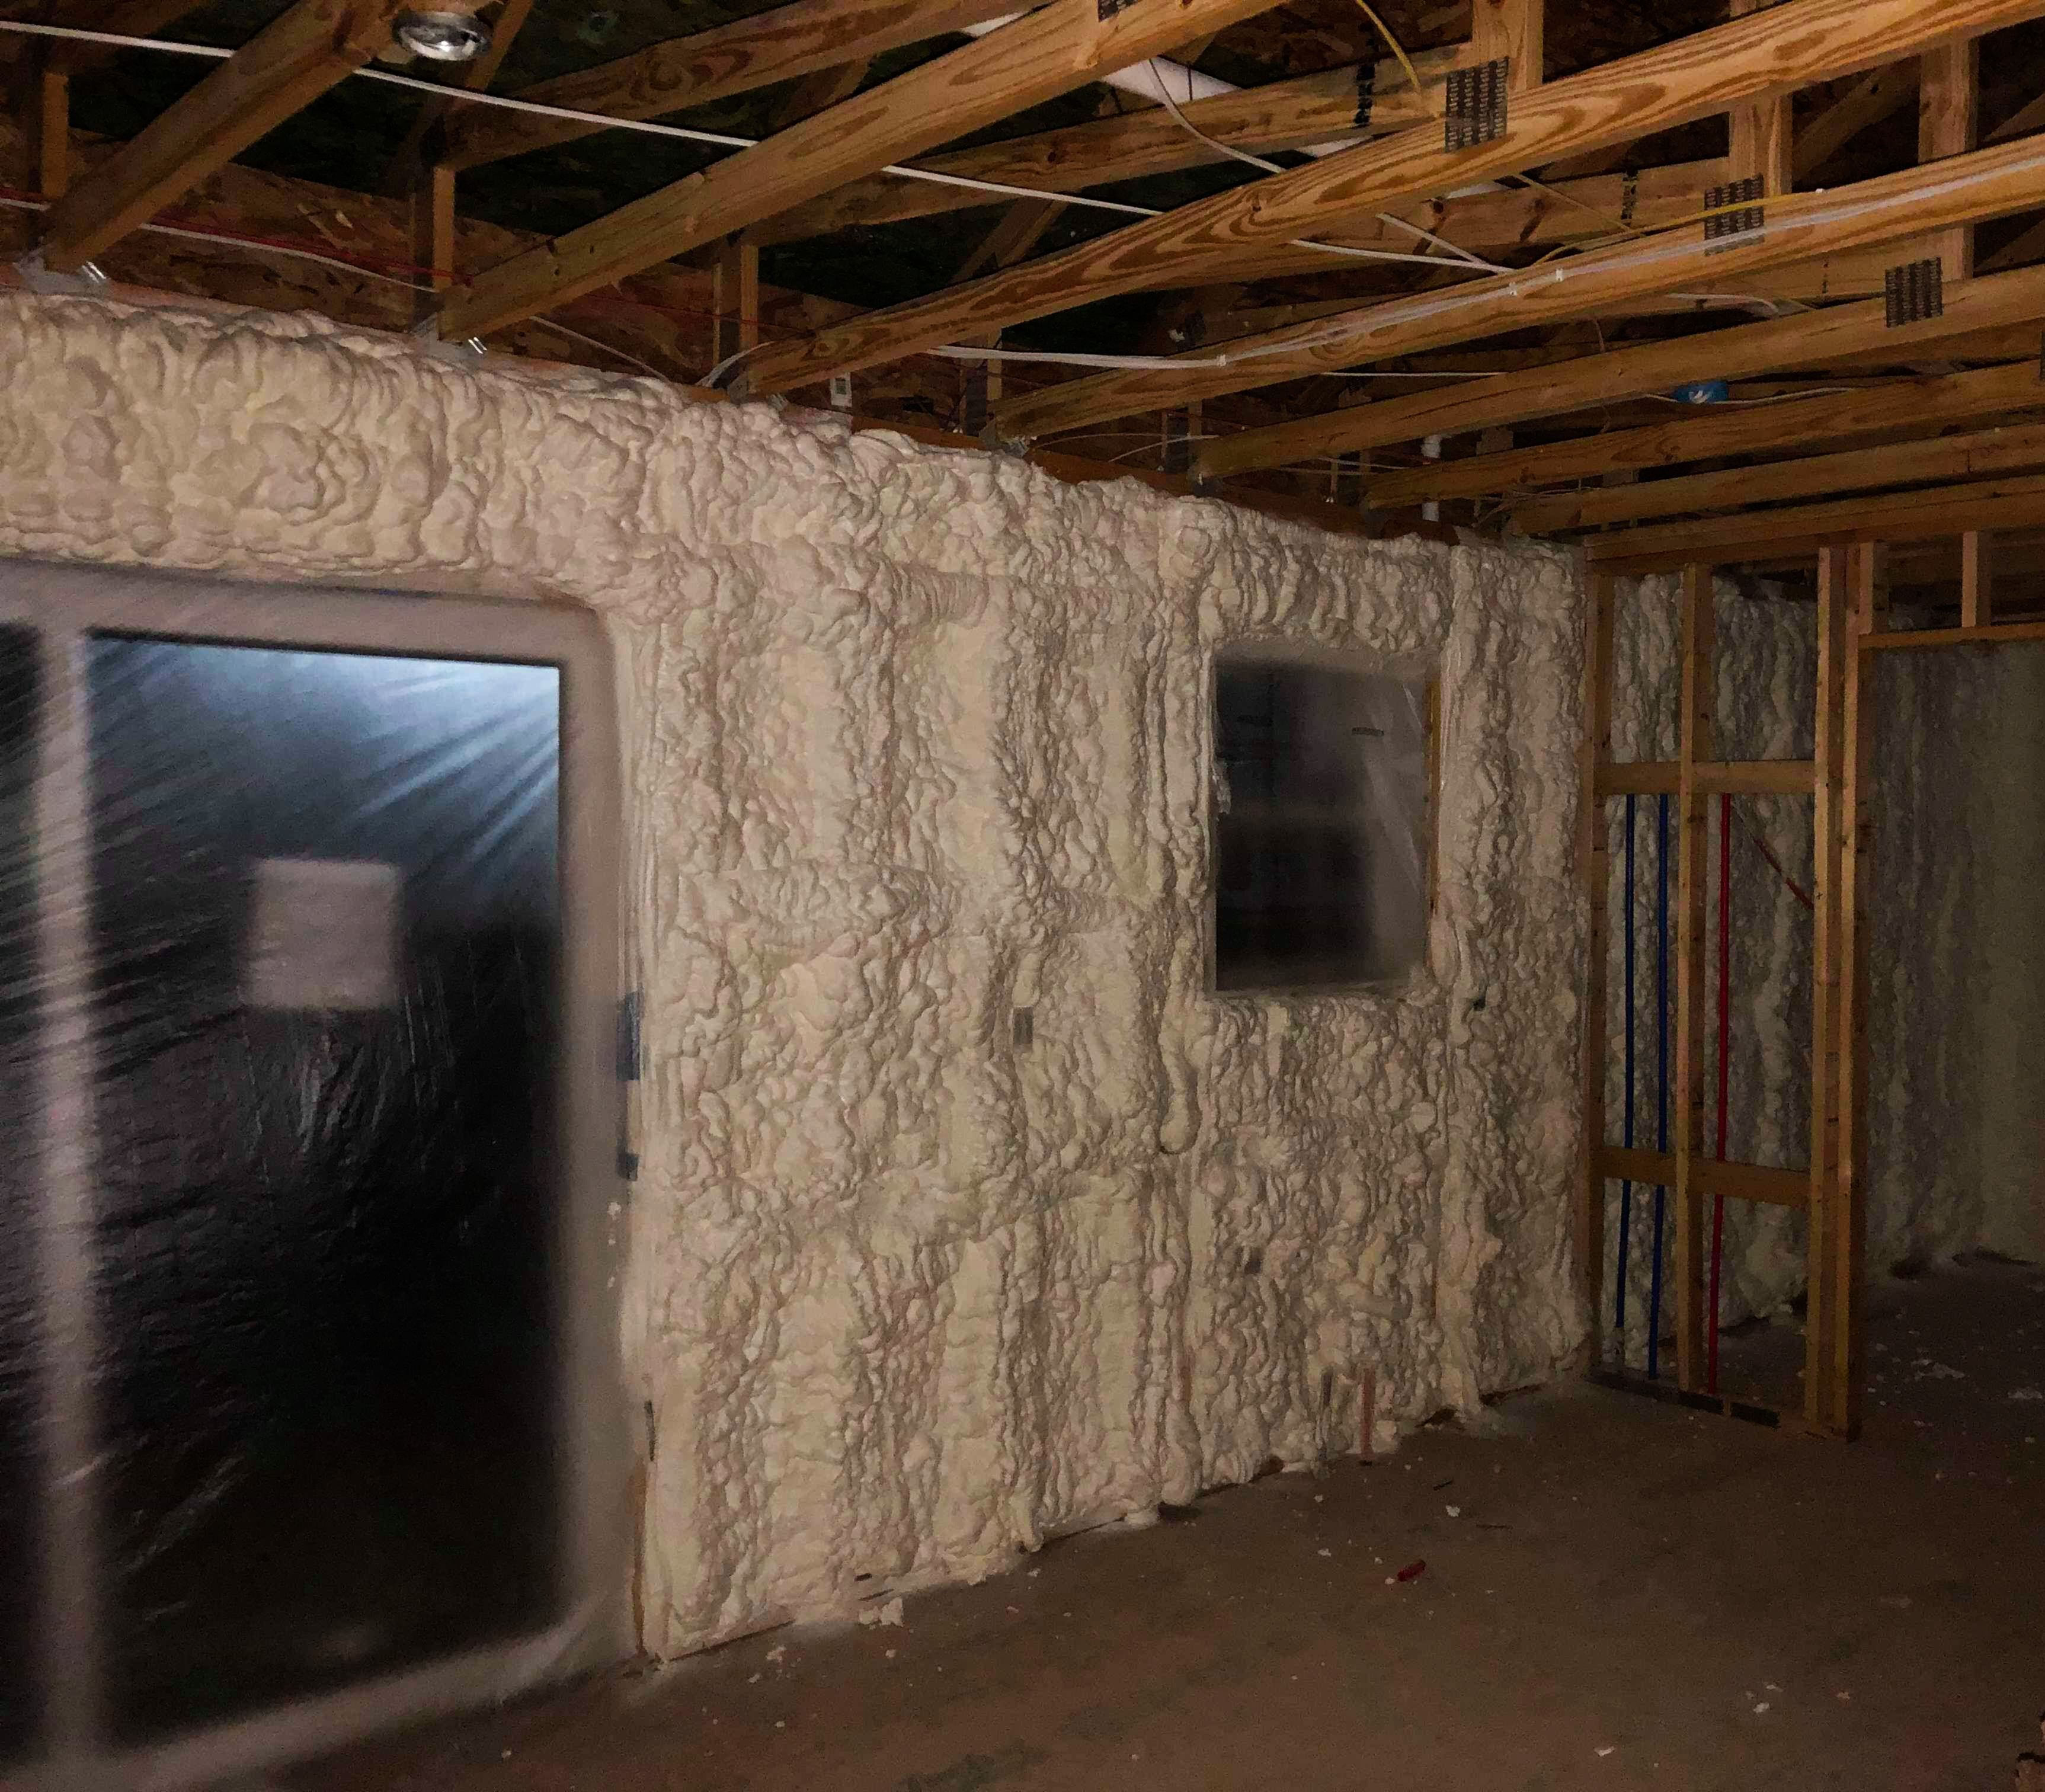 Insulated wall cavities with spray foam insulation